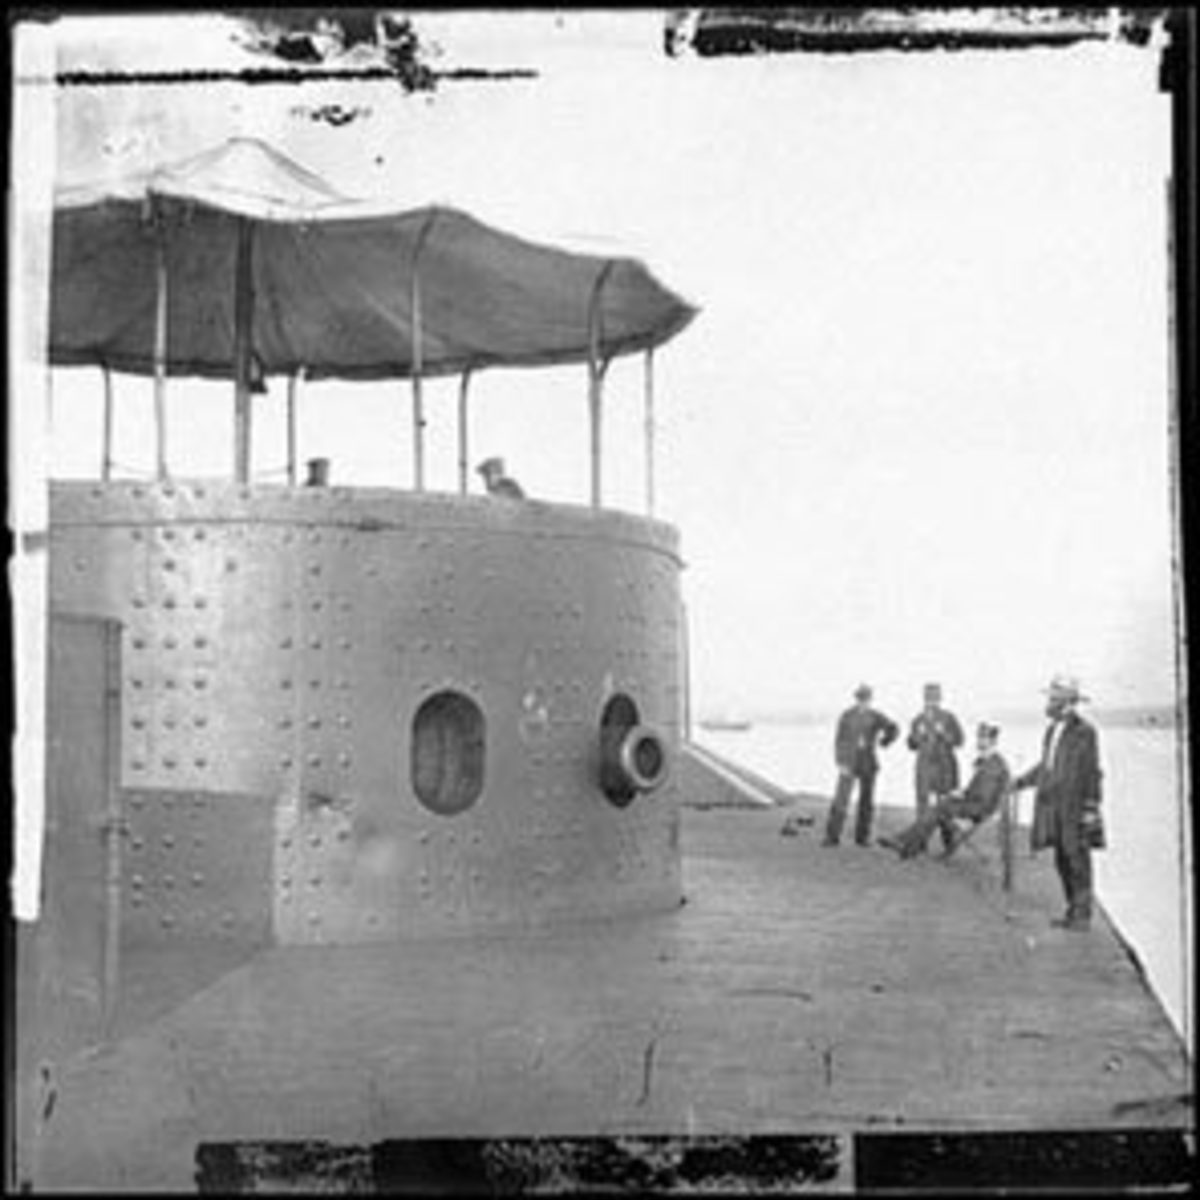 USS Monitor, the Union's first ironclad vessel